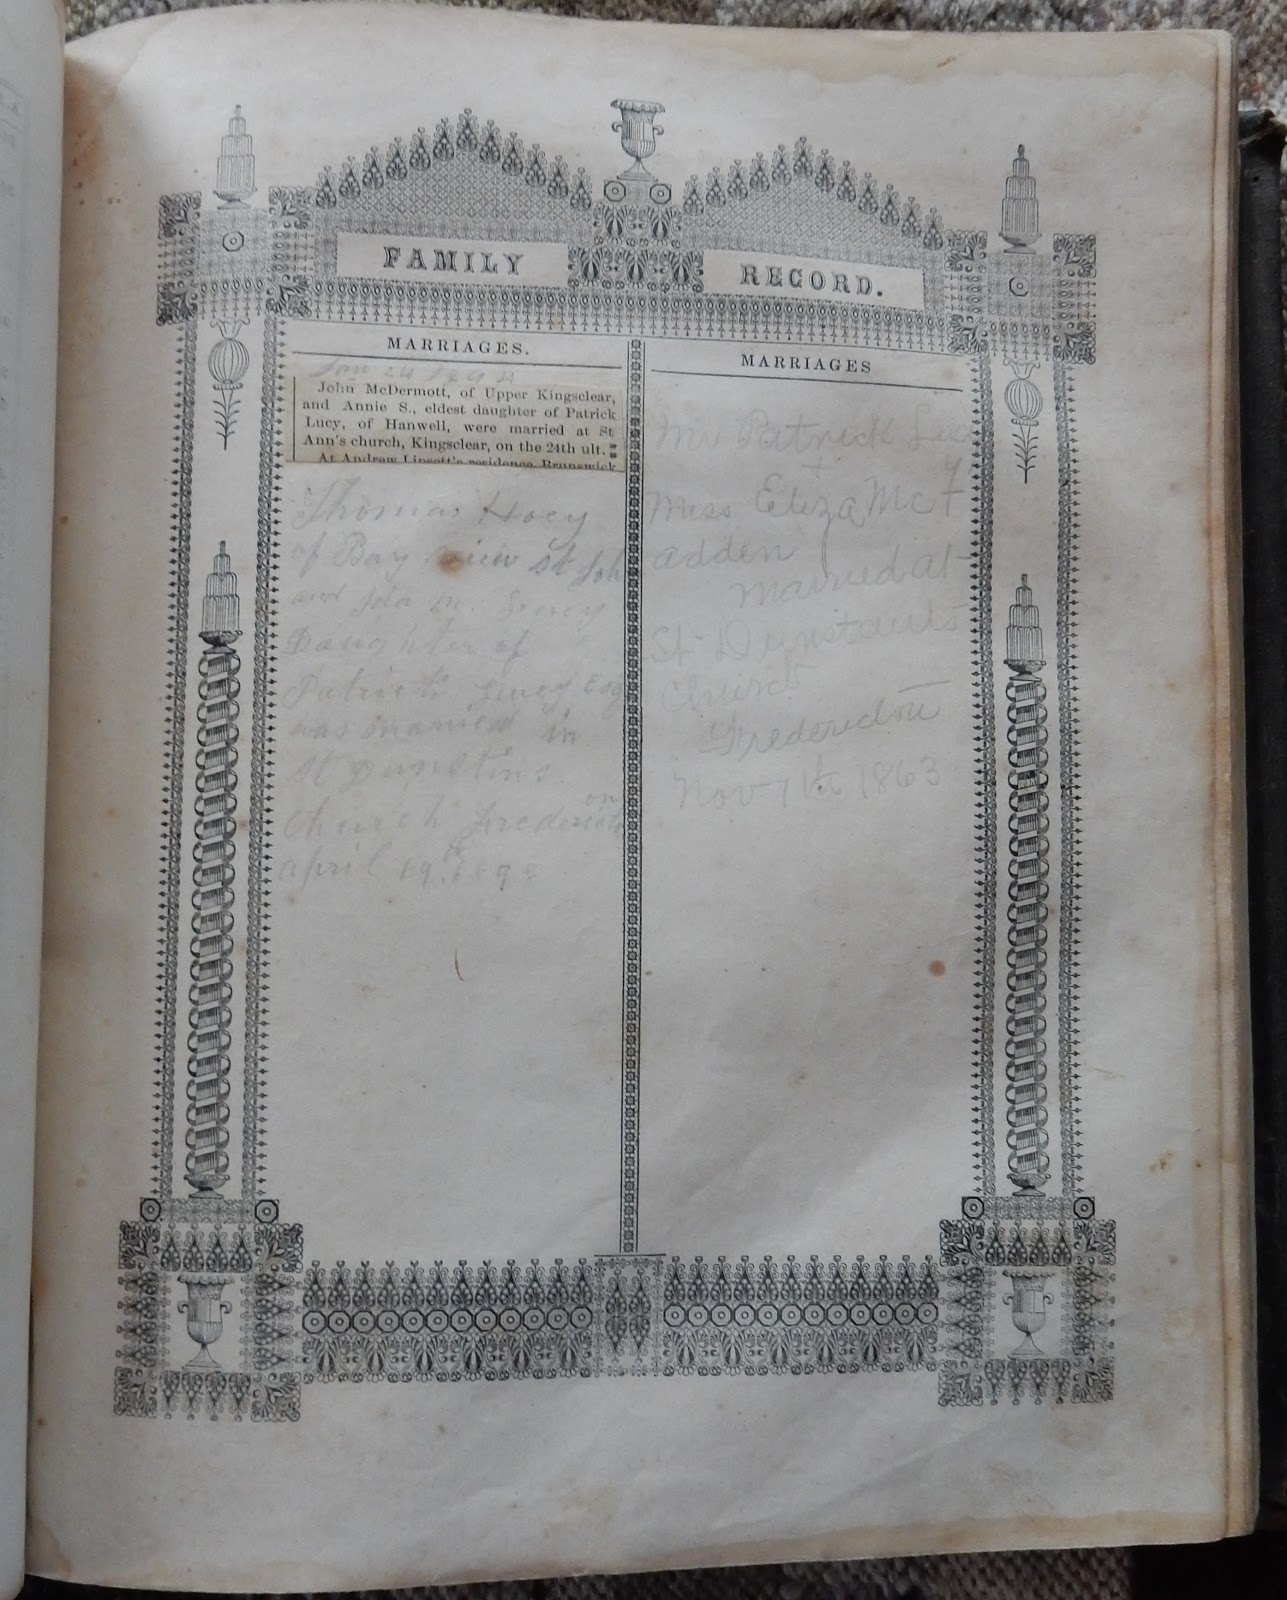 Heirlooms reunited bible of the lucy and mcdermott families of marriage of john mcdermott of upper kingsclear new brunswick and annie stella lucy daughter of patrick lucy of hanwell new brunswick aiddatafo Images